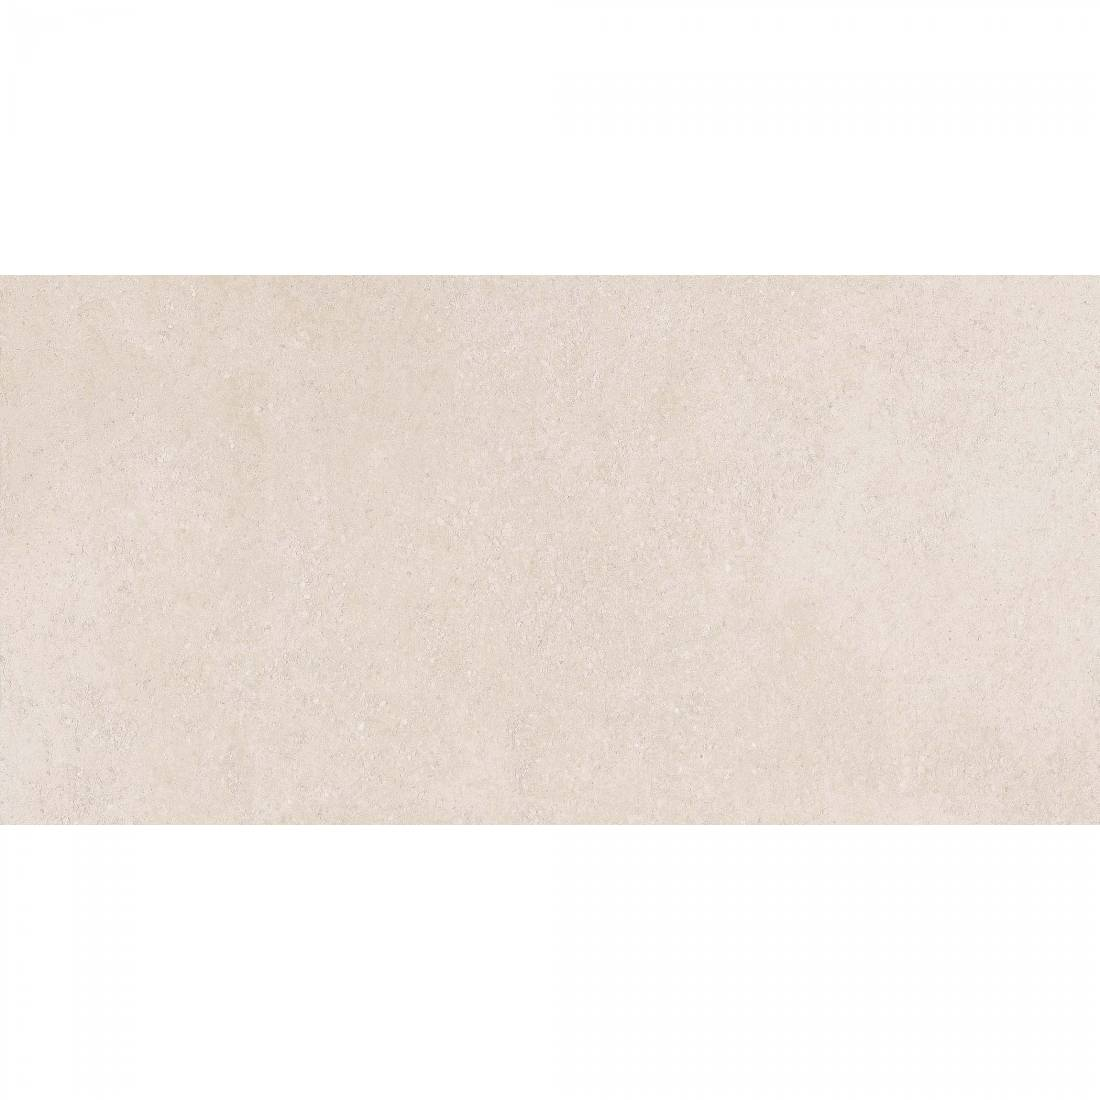 Autumn 30x60 Light Beige Matt 1